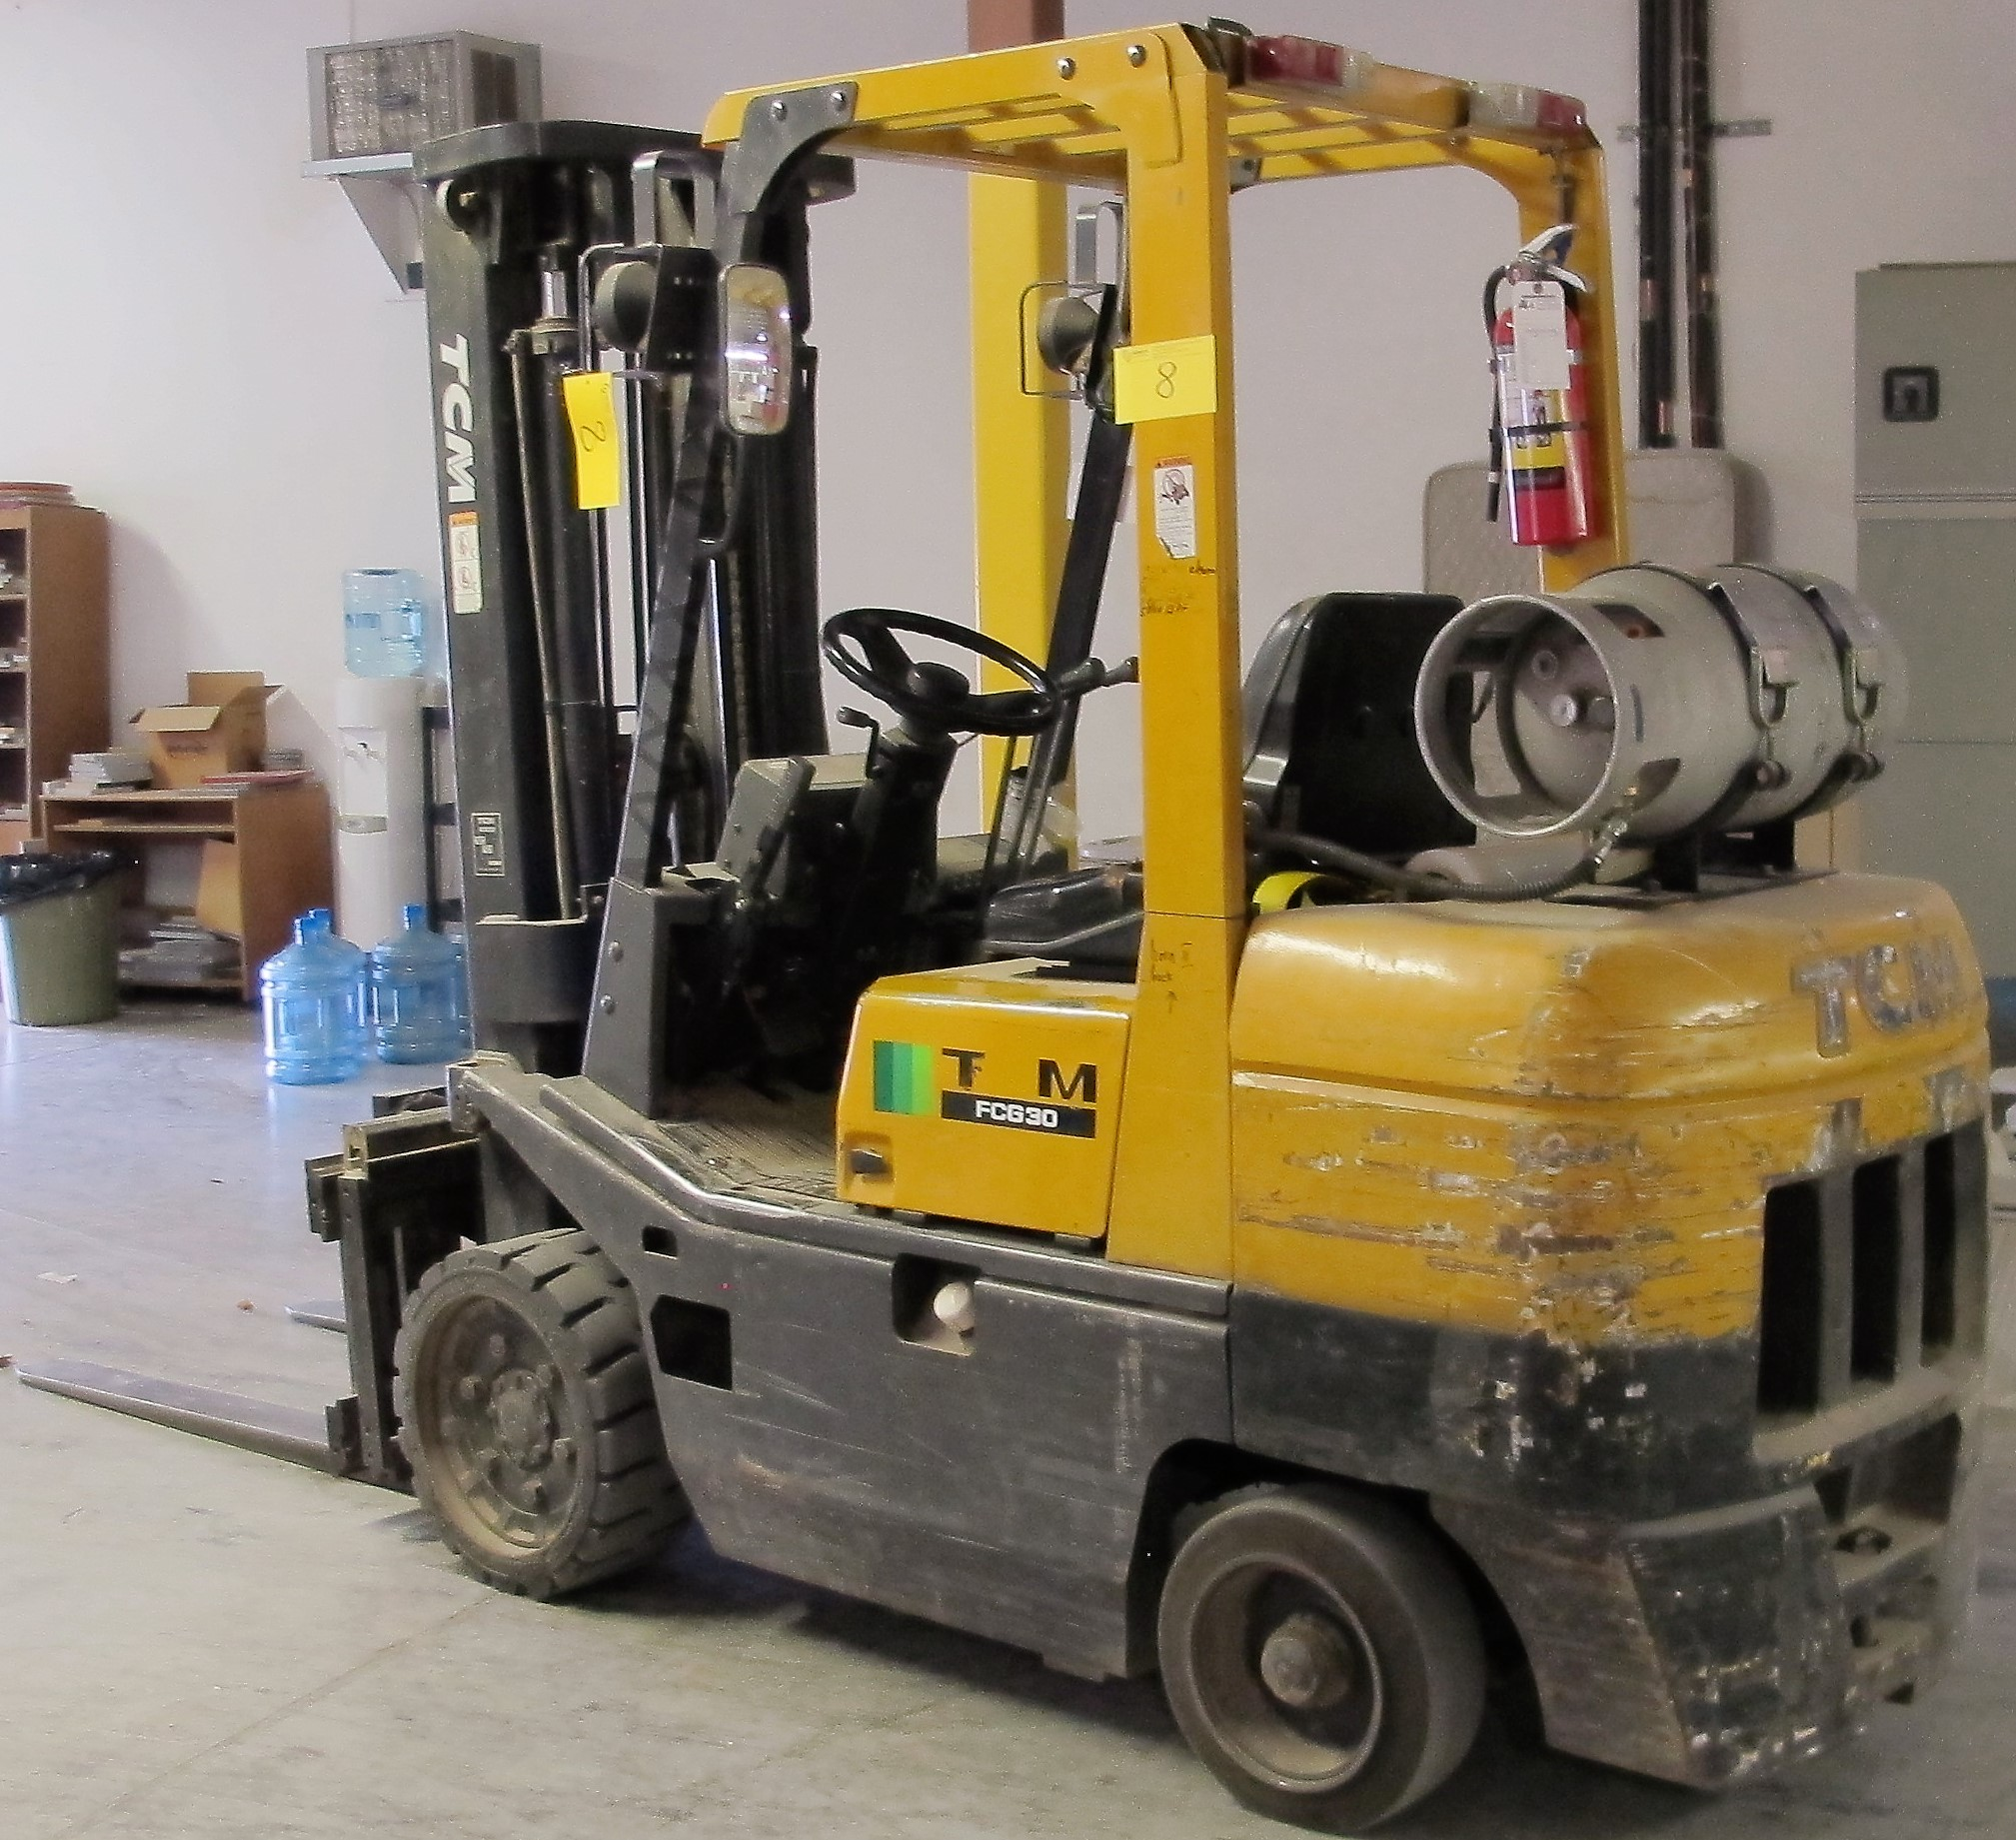 "Lot 8 - TCM FCG30T7T PROPANE FORKLIFT, 5,550LB CAP., 189"" MAX LIFT, 3 STAGE, SIDE SHIFT, OUTDOOR TIRES, S/"